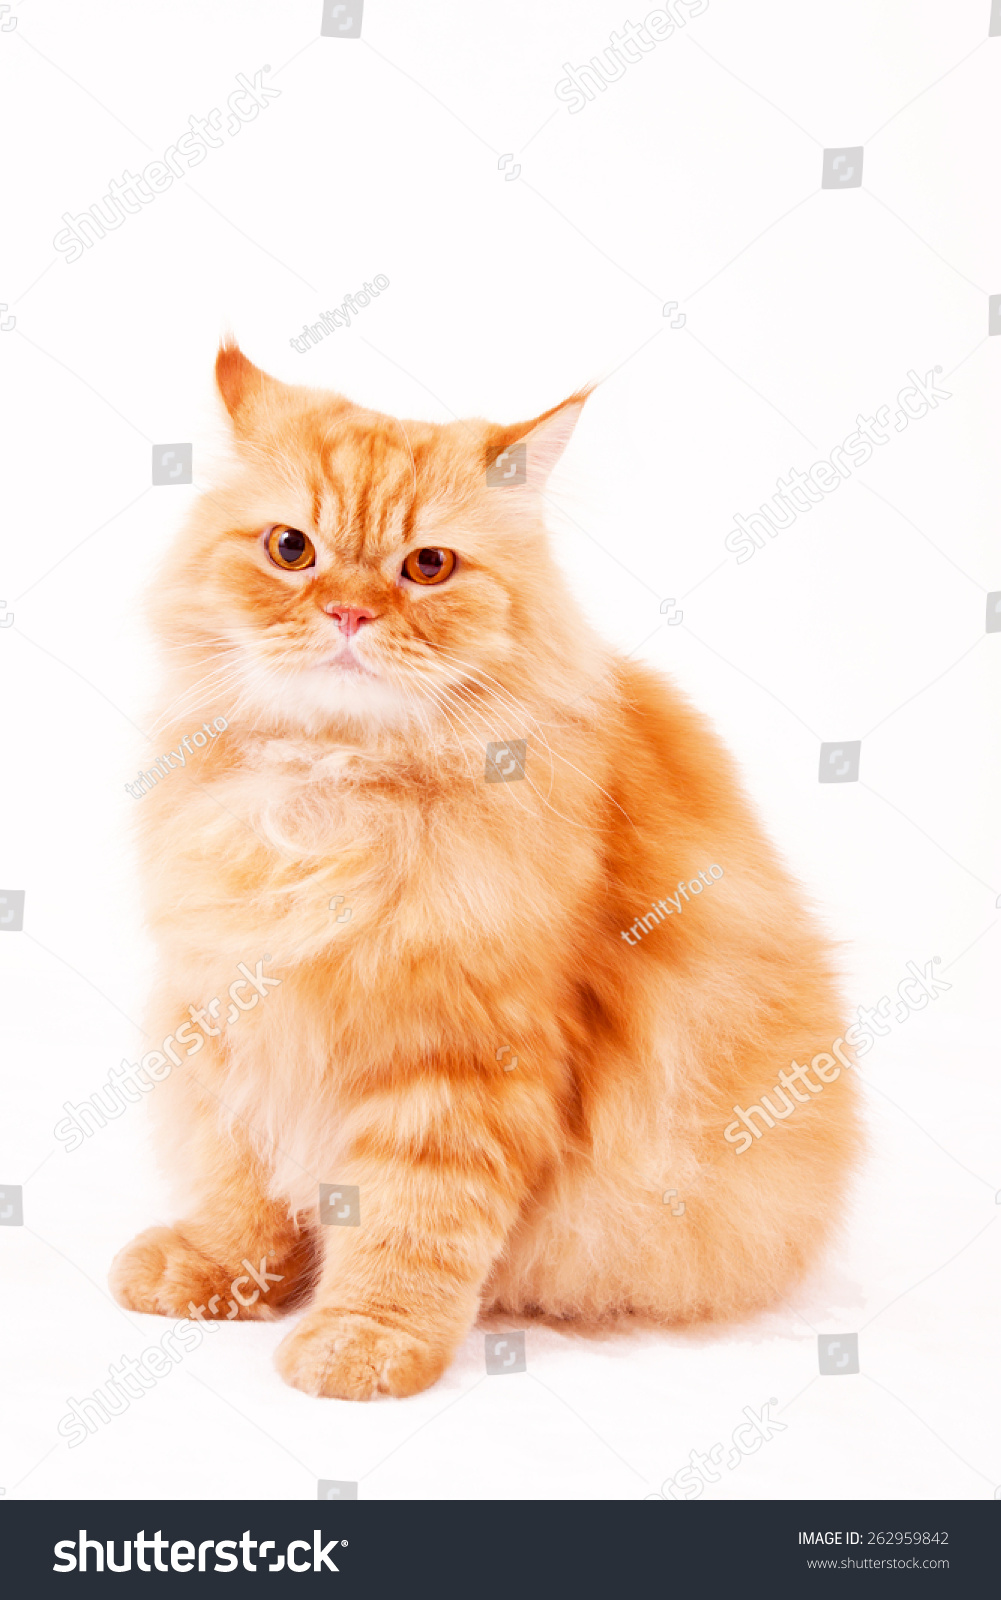 Orange Cat Garfield Cat Sitting Cat Stock